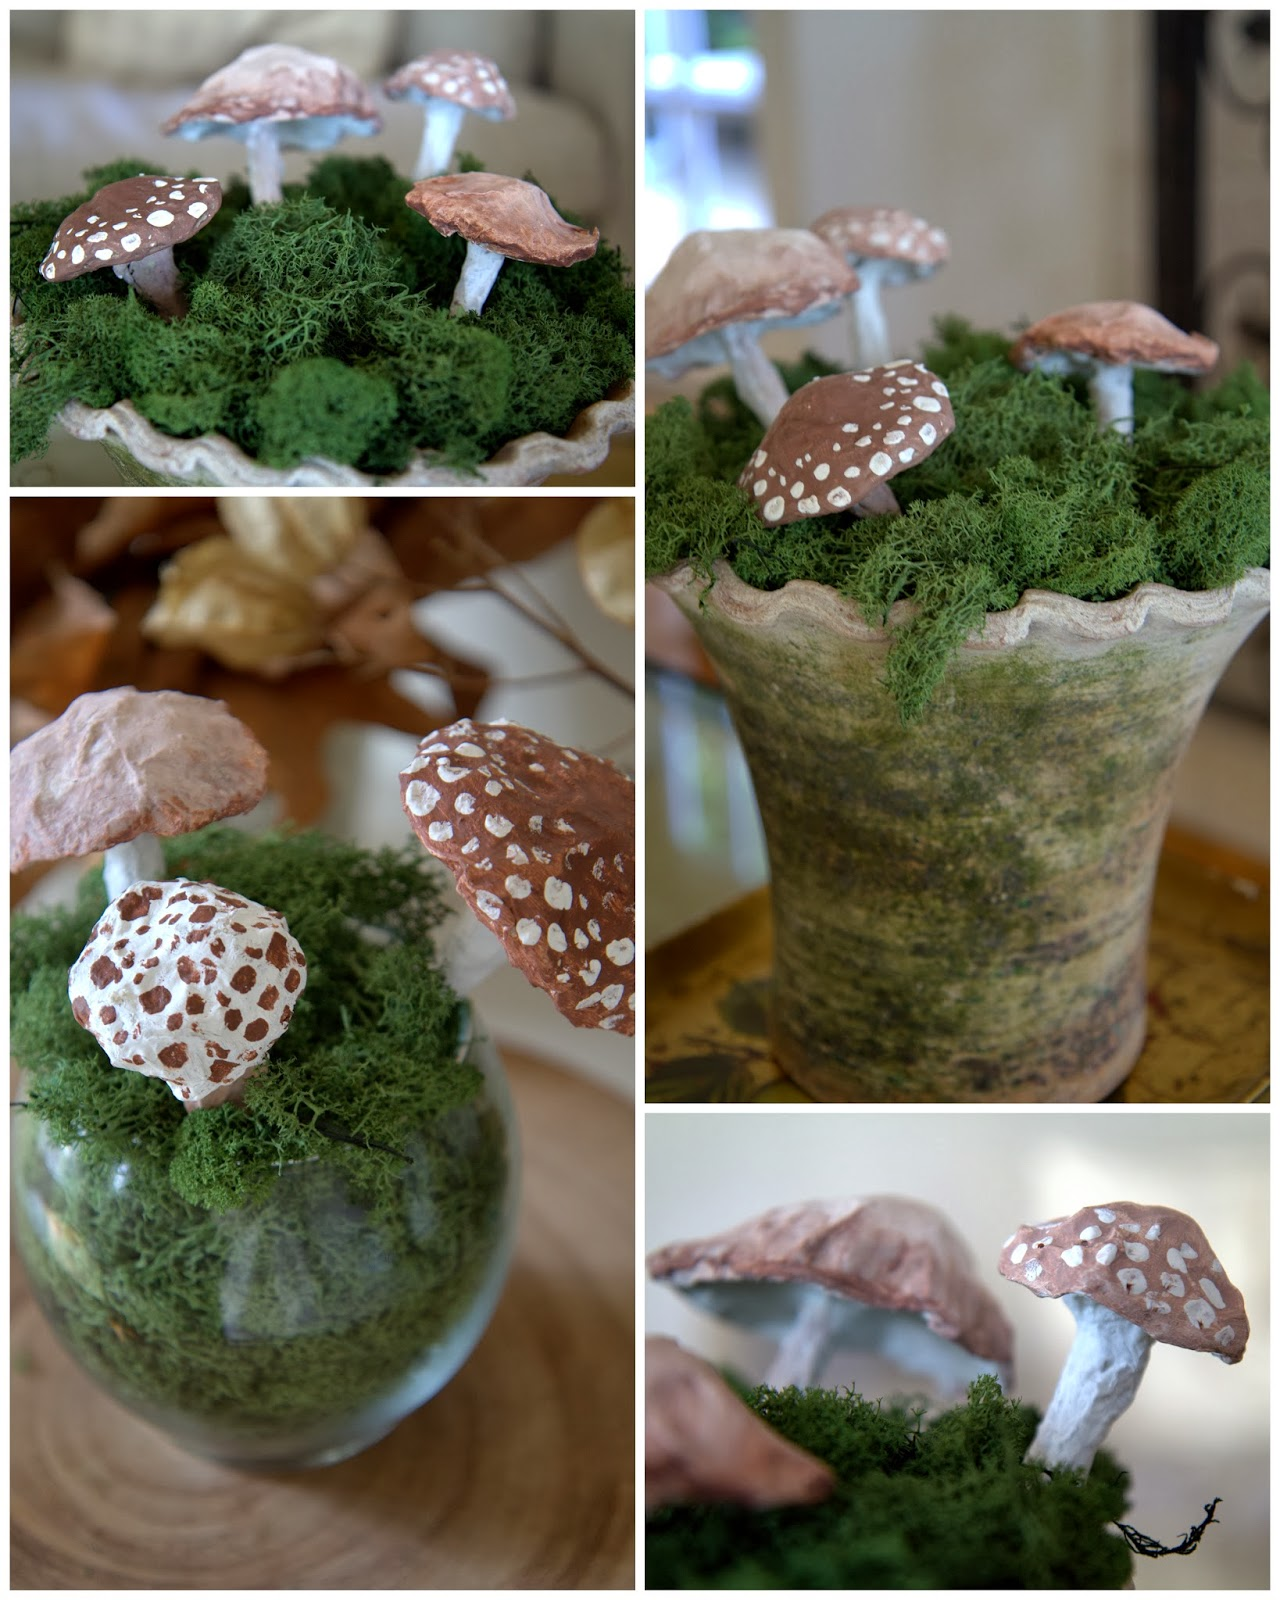 Paper Mache Mushrooms - DIY